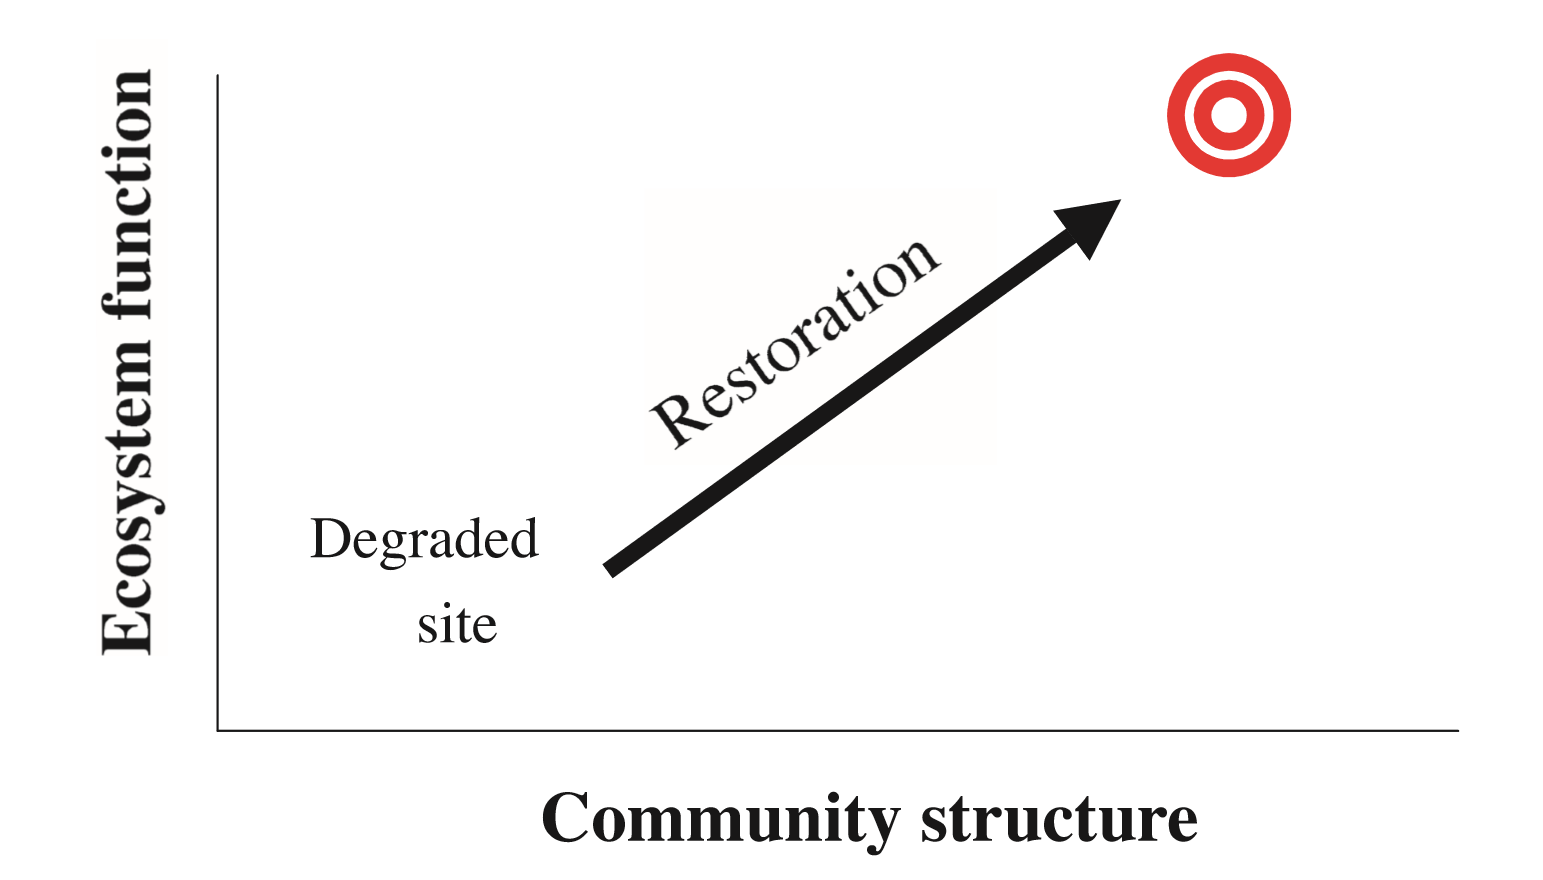 Fig. 1: Simplification of Bradshaw's (1984) model of restoration, where an intervention project (the restoration) turns a degraded site, with nearly zero ecosystem function and community structure, to a more desirable state (the target) with increased community structure and function. Community structure generally refers to the number of species in the community and ecosystem function is the number of processes (e.g. pollination, nutrient cycling) these species provide. Reproduced from Zedler et al. 2007.